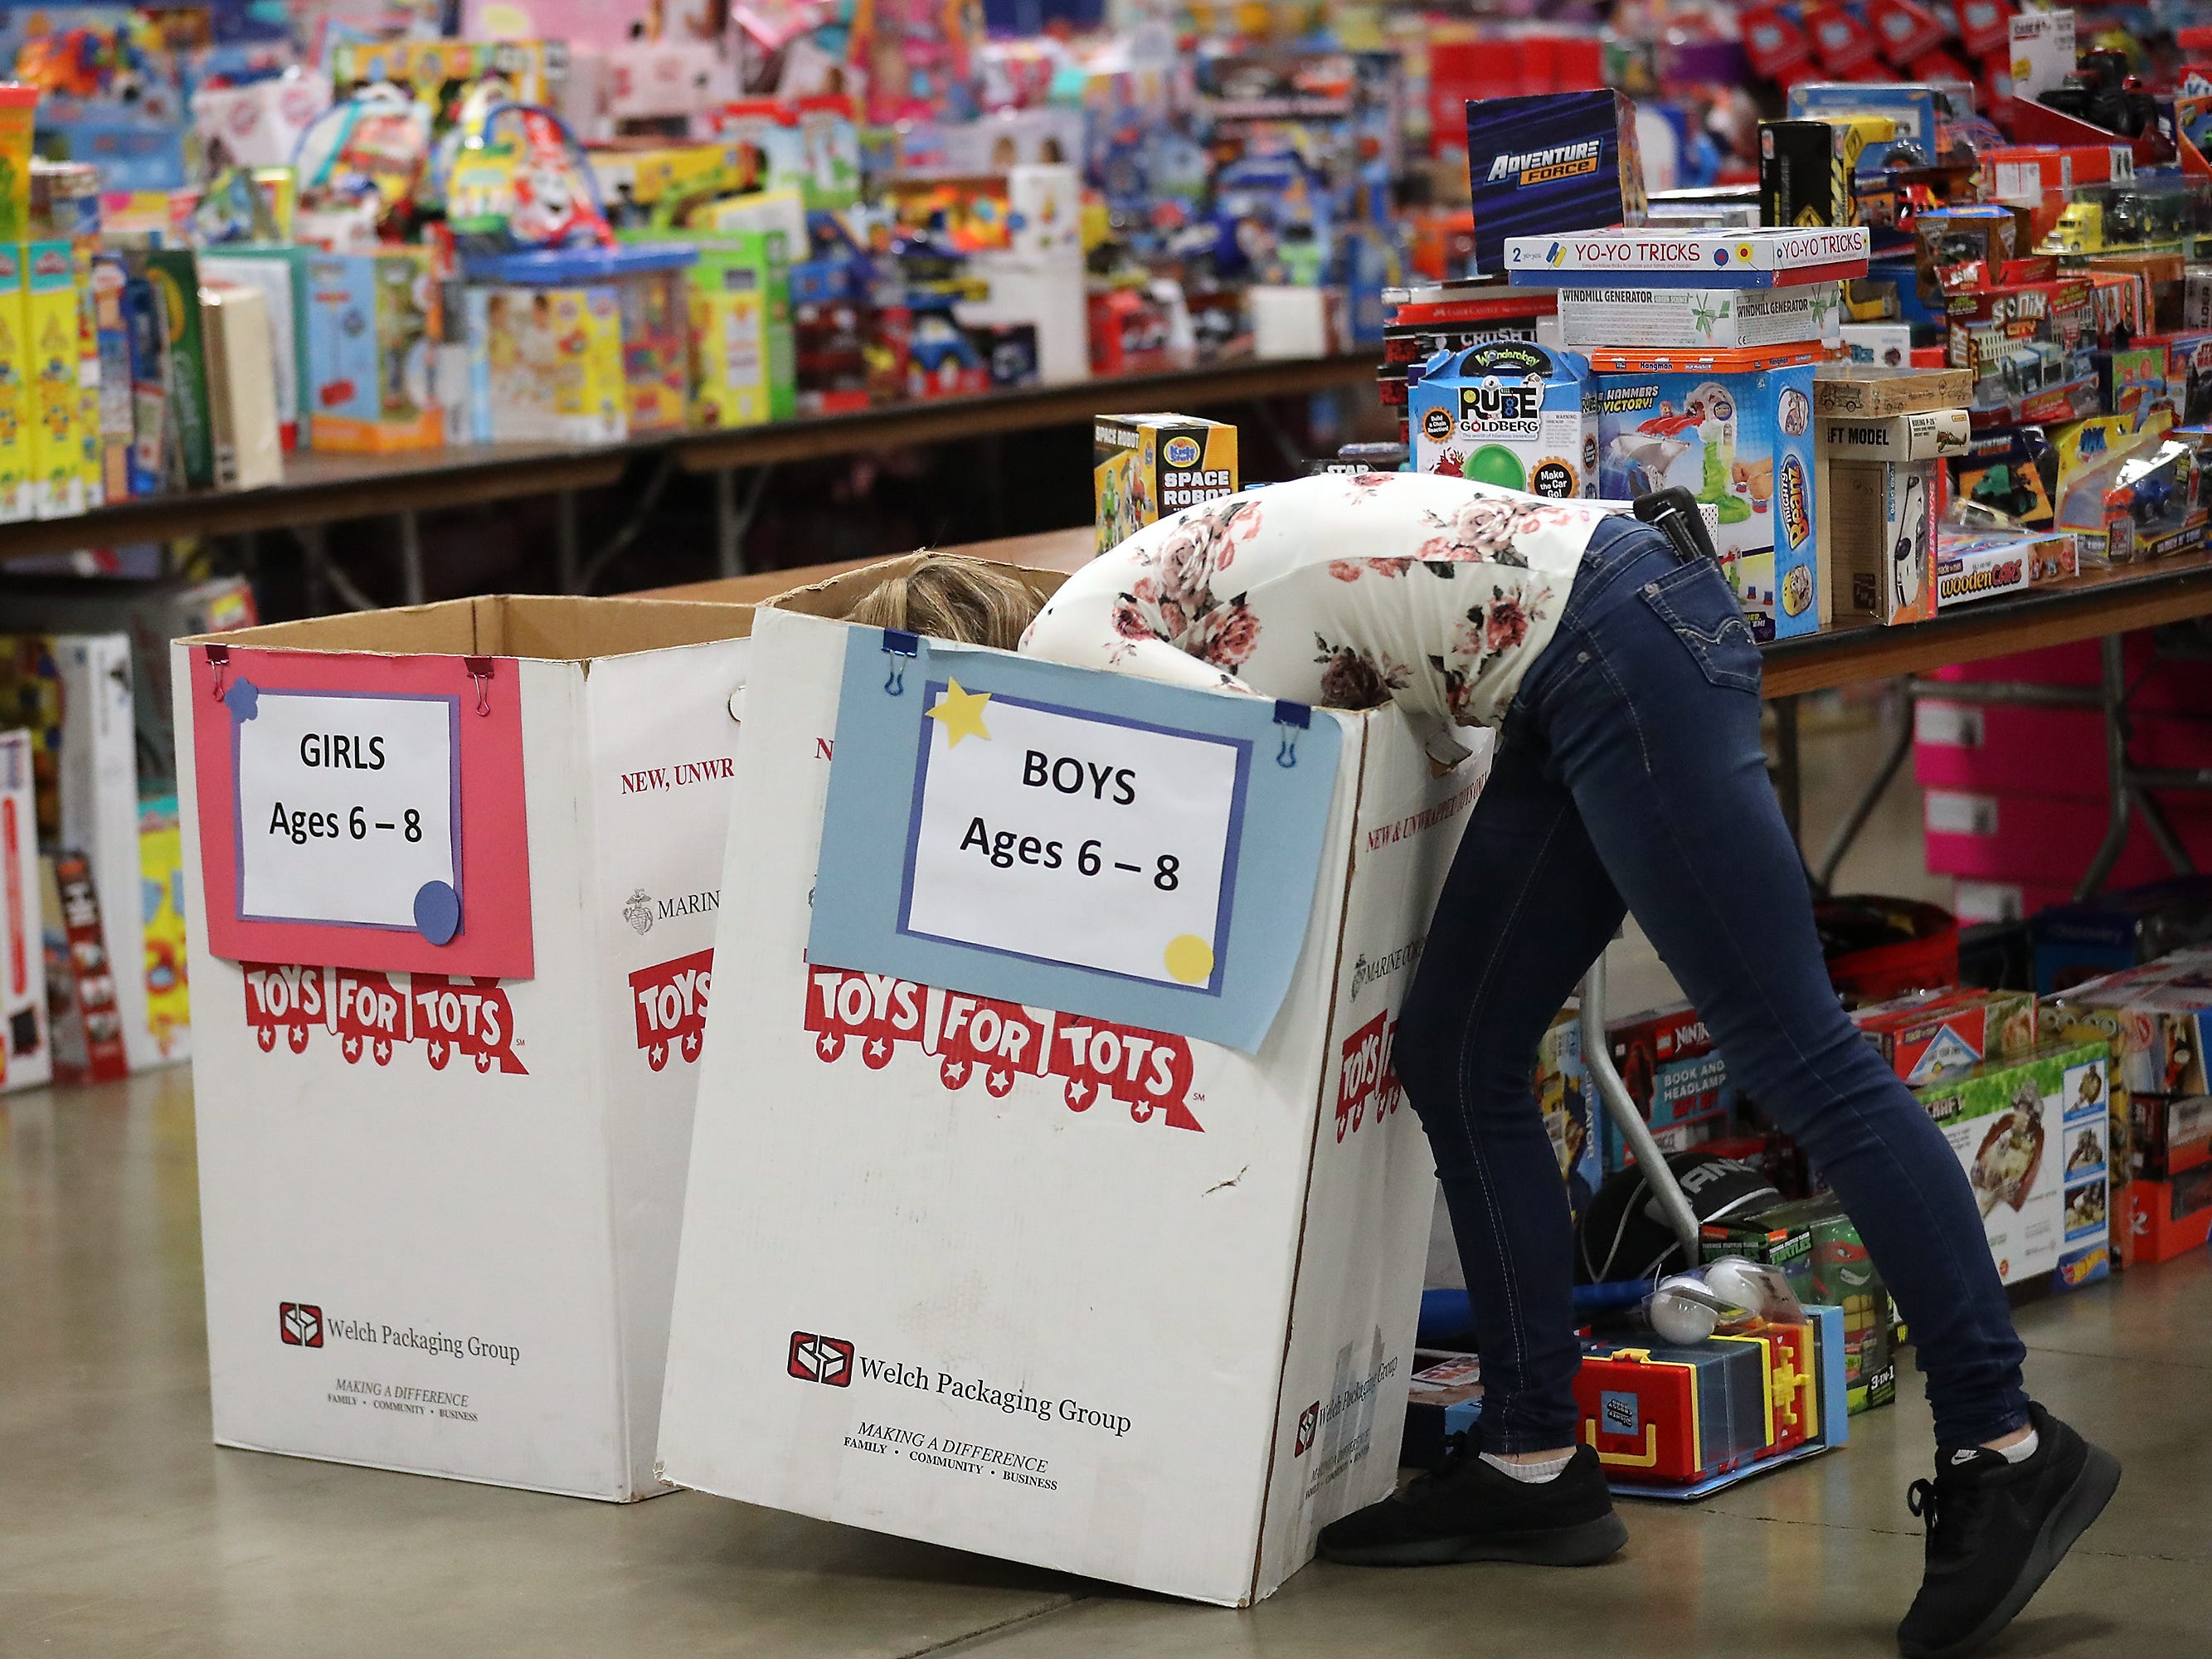 Volunteer Mikayla Hawk, 14, disappears halfway into a box as she grabs toys out of it to be displayed on tables during the preparation for the upcoming Toys For Tots event in President's Hall at the Kitsap County Fairgrounds on Wednesday, December 12, 2018.